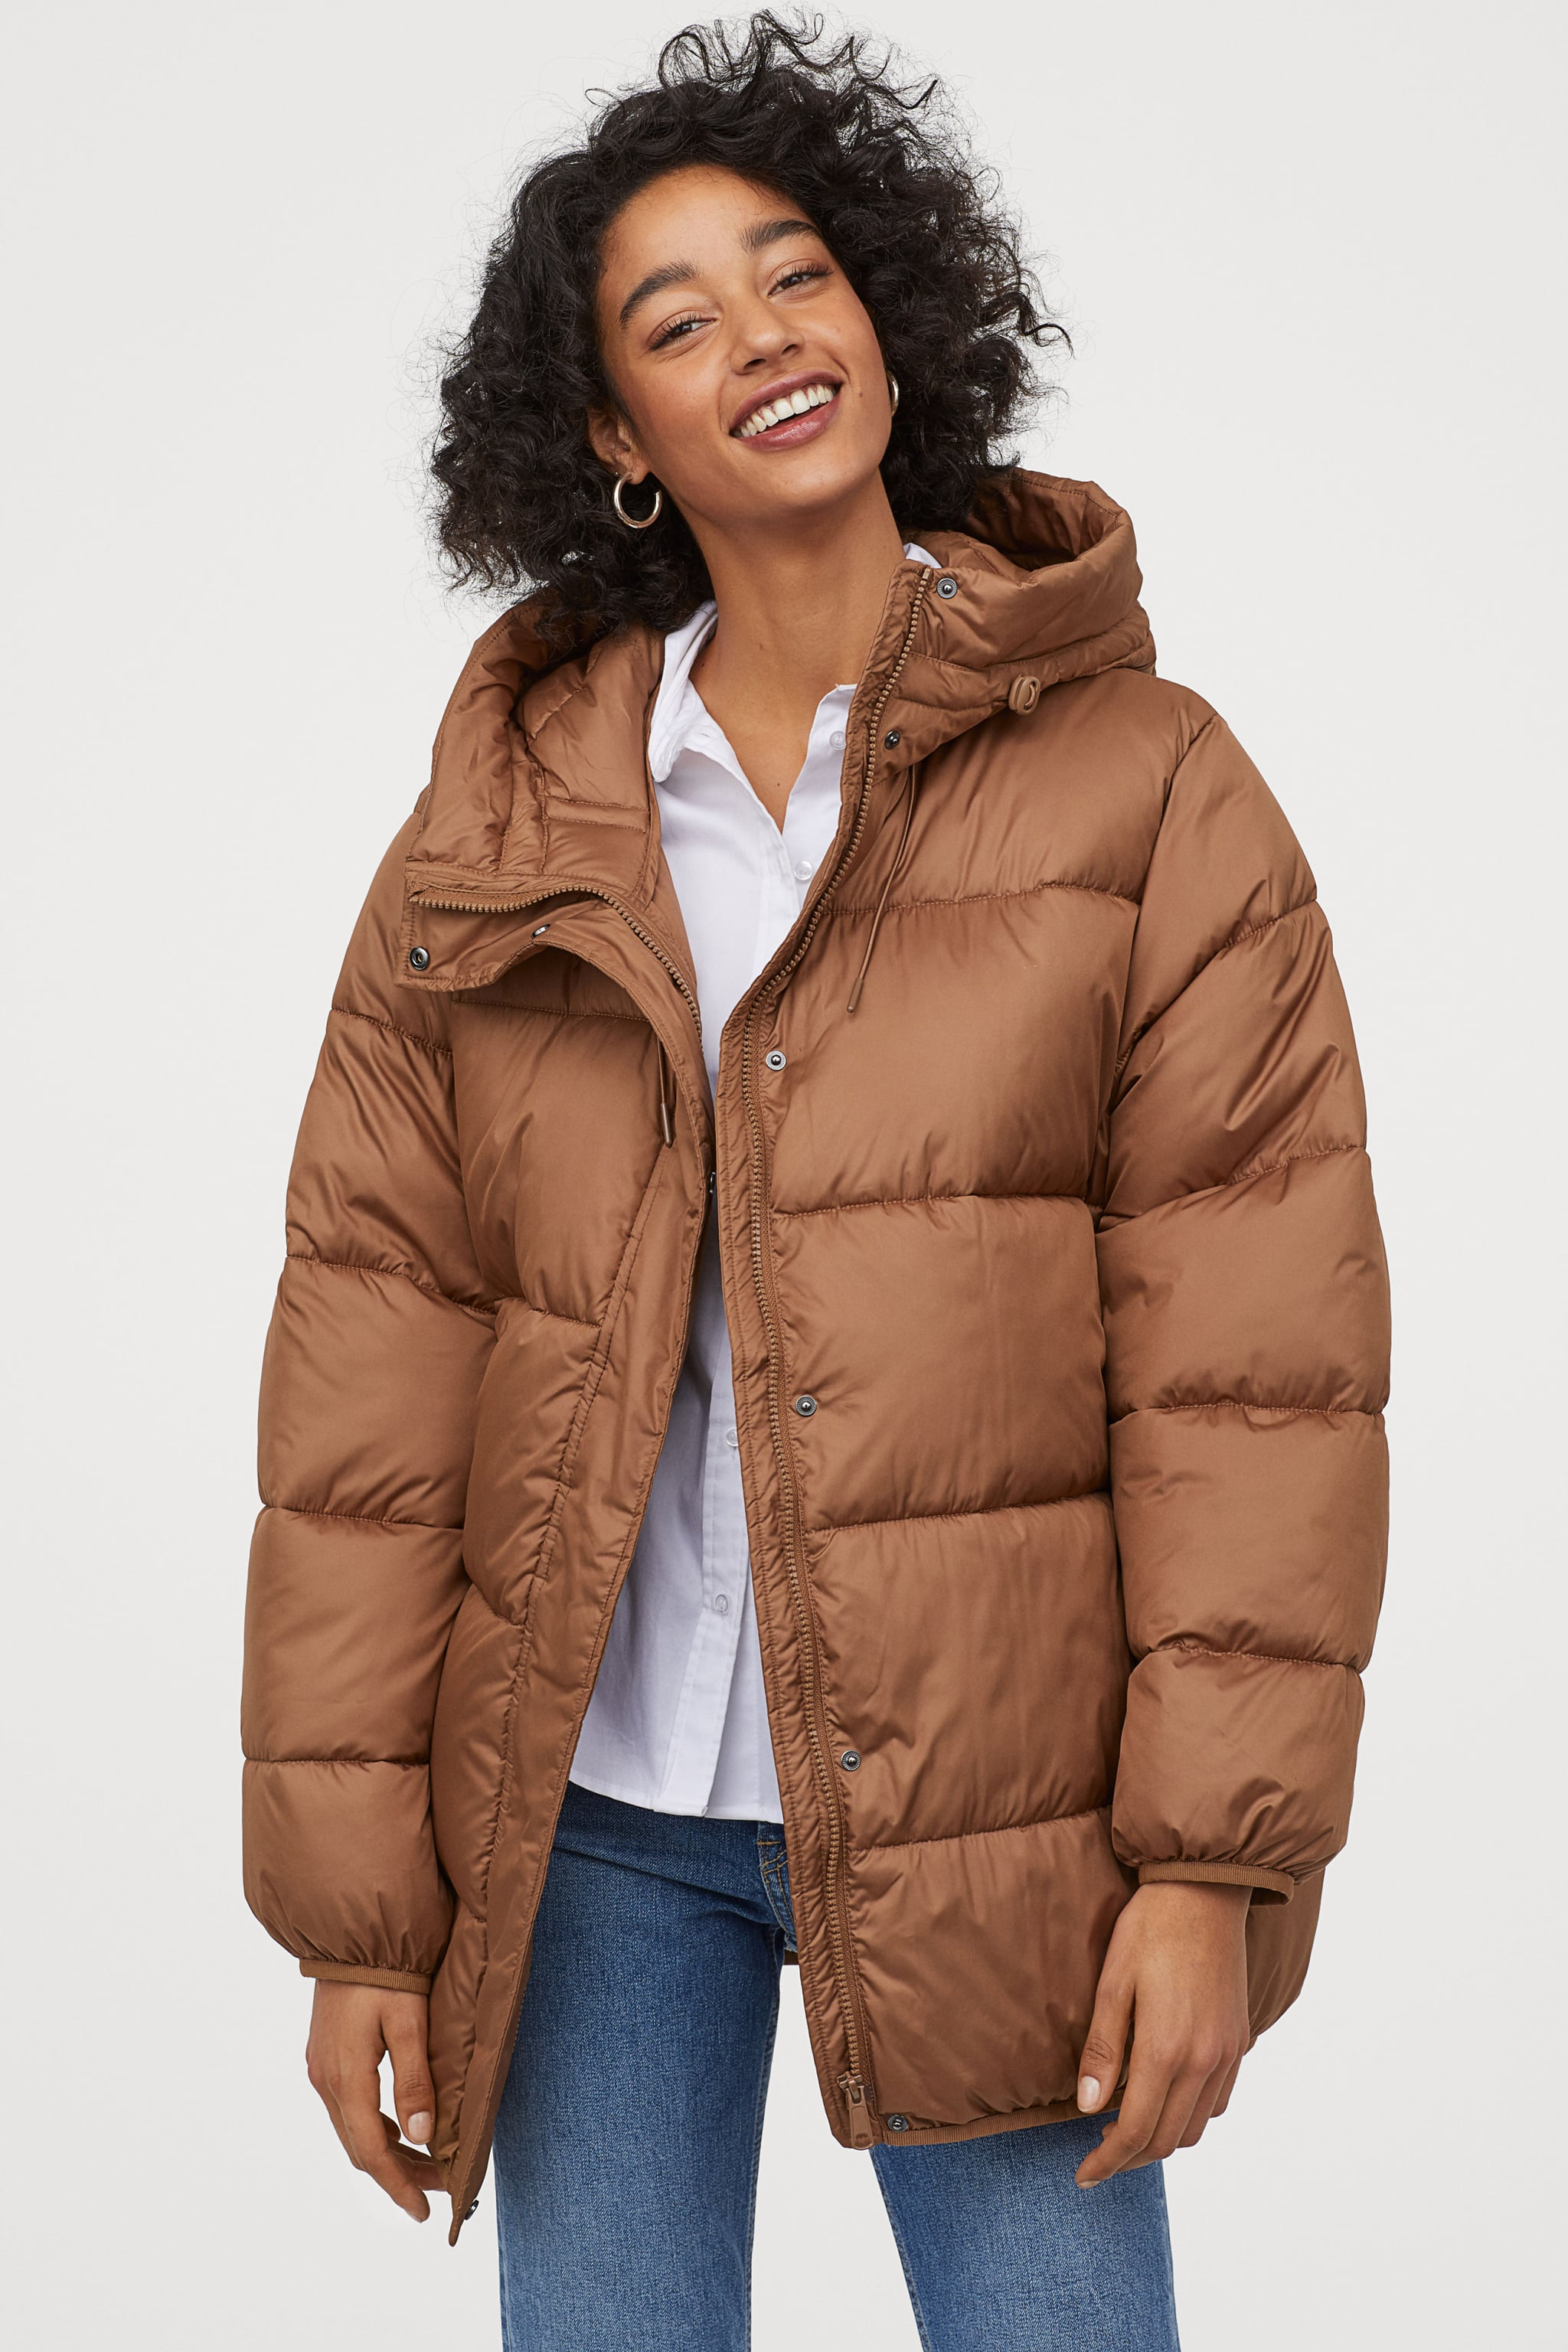 cheap for sale professional sale purchase newest H&M Padded Hooded Jacket | When It Comes to Styling Your ...